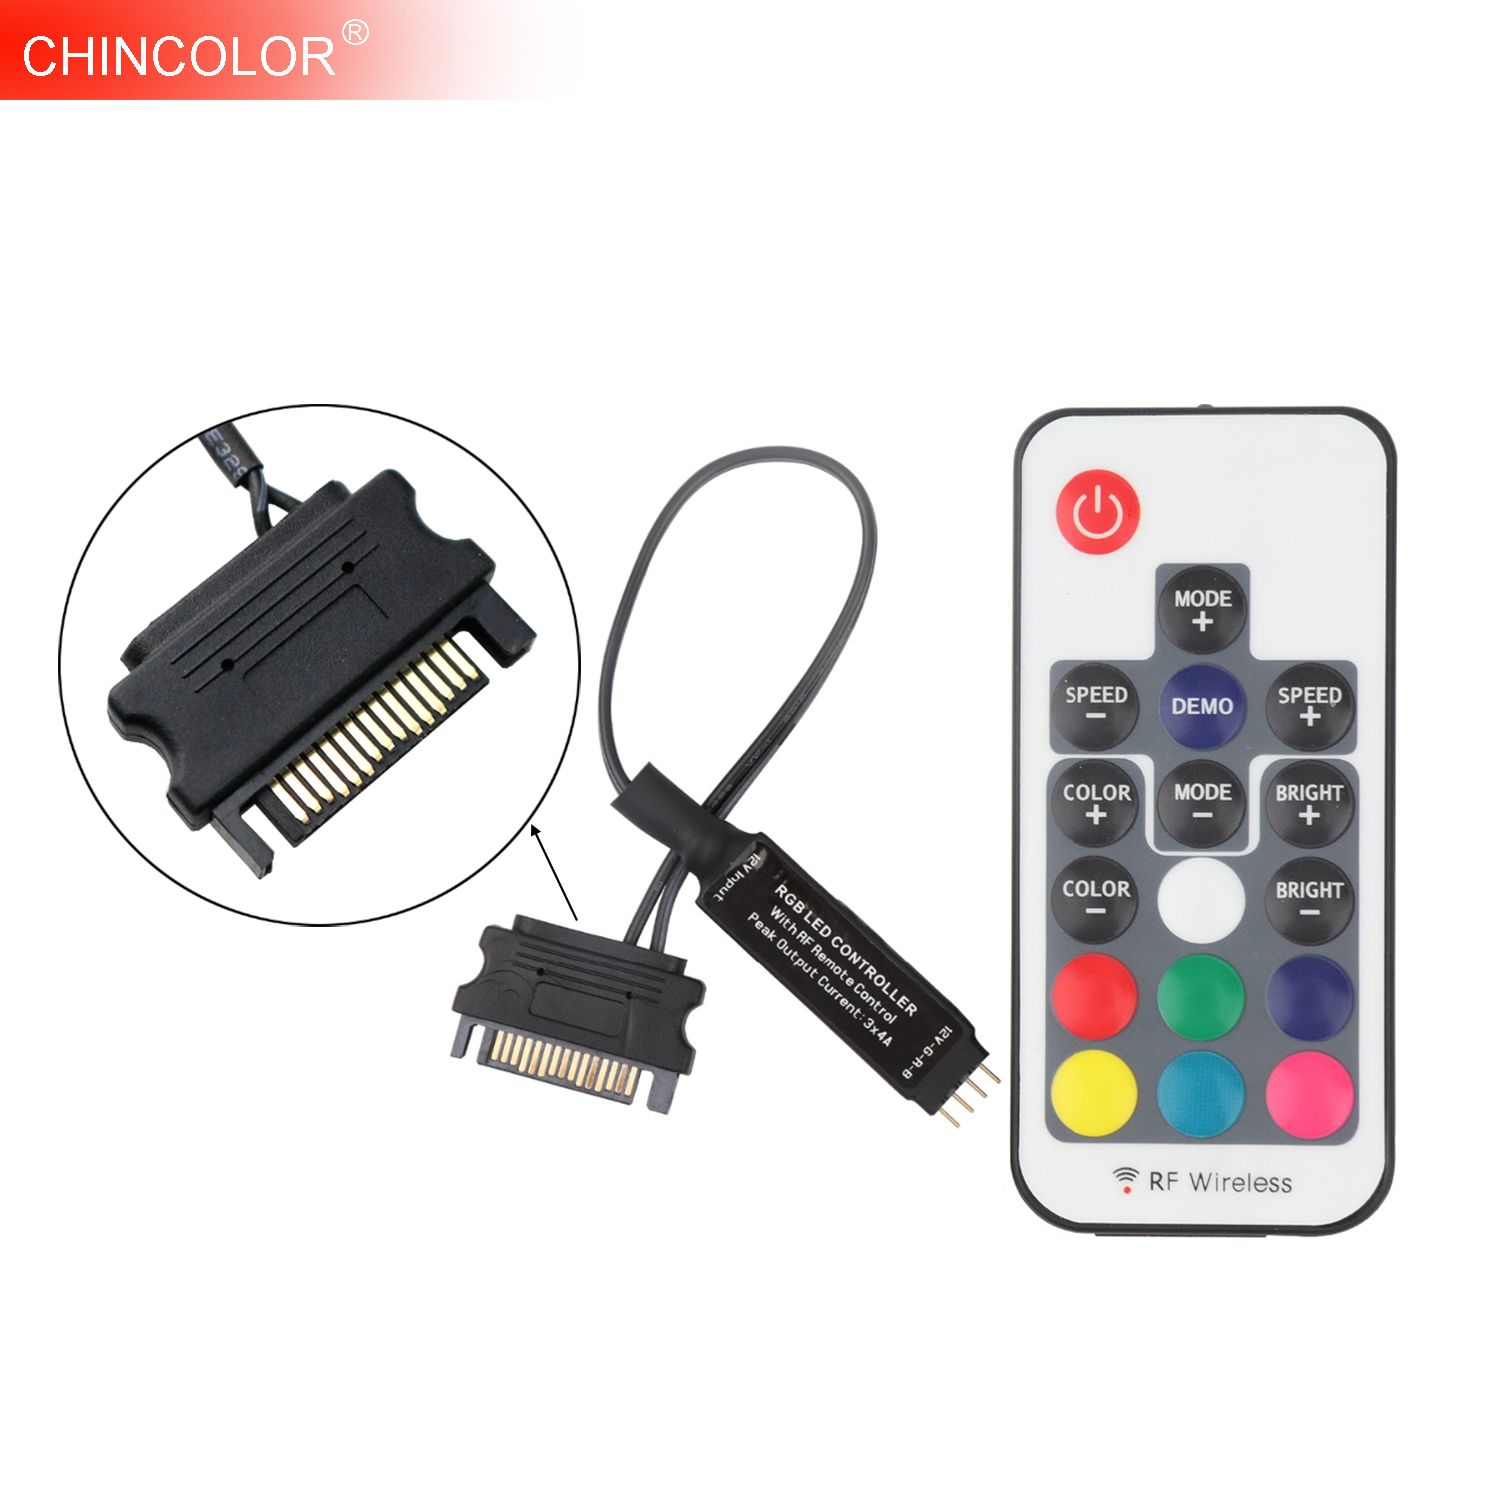 SATA RGB Controller RF Remote Wireless Controler DC12V 3*4A Sata For PC Computer Outlet Jack 5050 RGB LED Strip Tape Lighting JQ